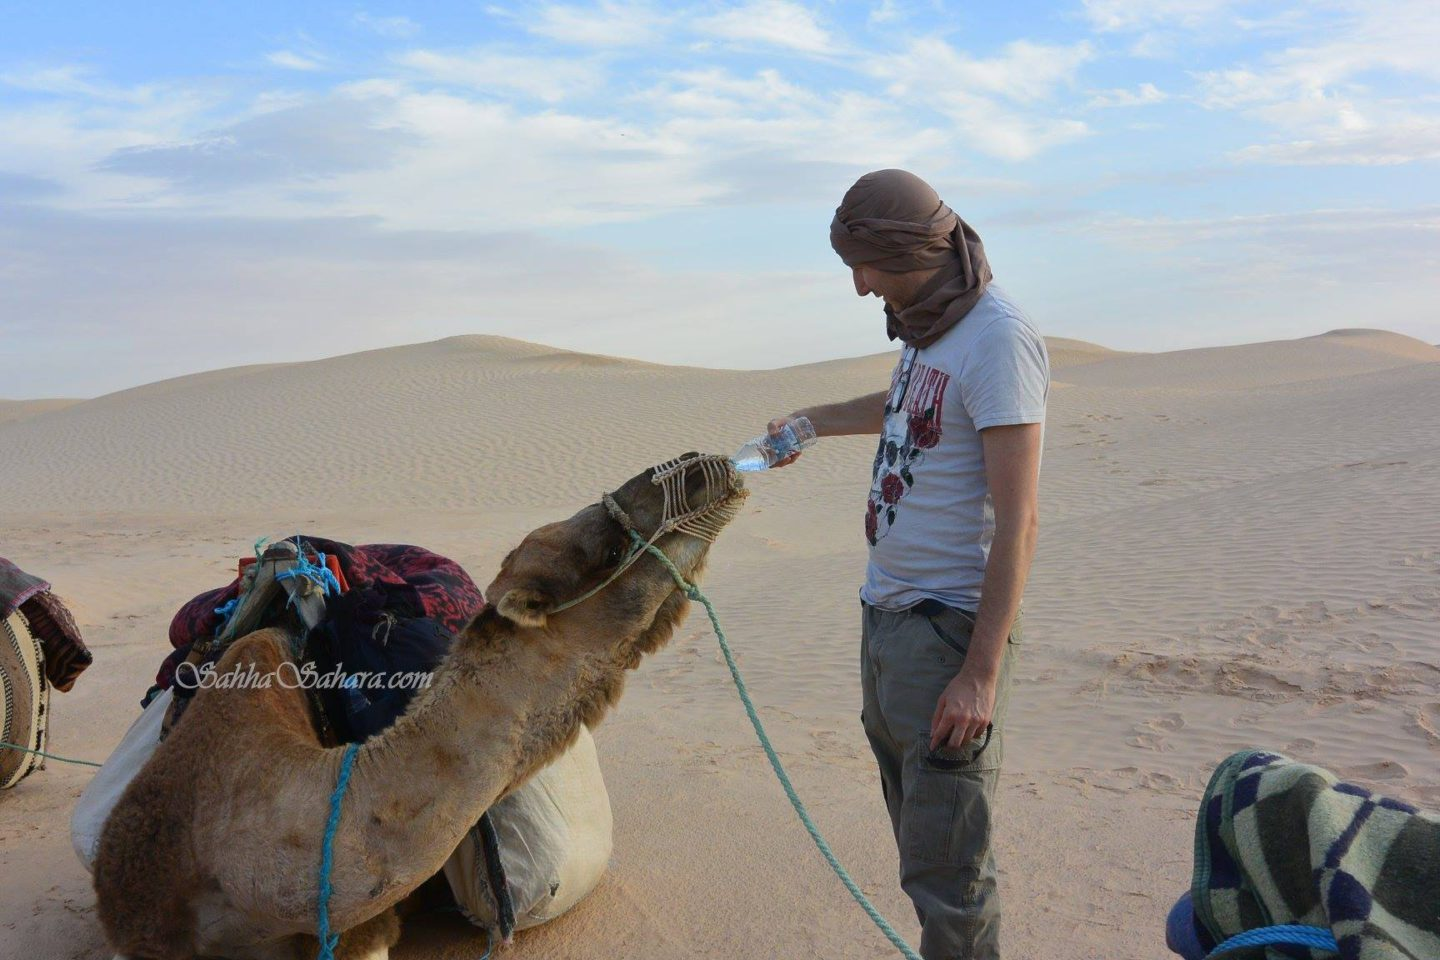 Sustainable camel treks carry tourists towards cultural understanding in southern Tunisia | The Switchers